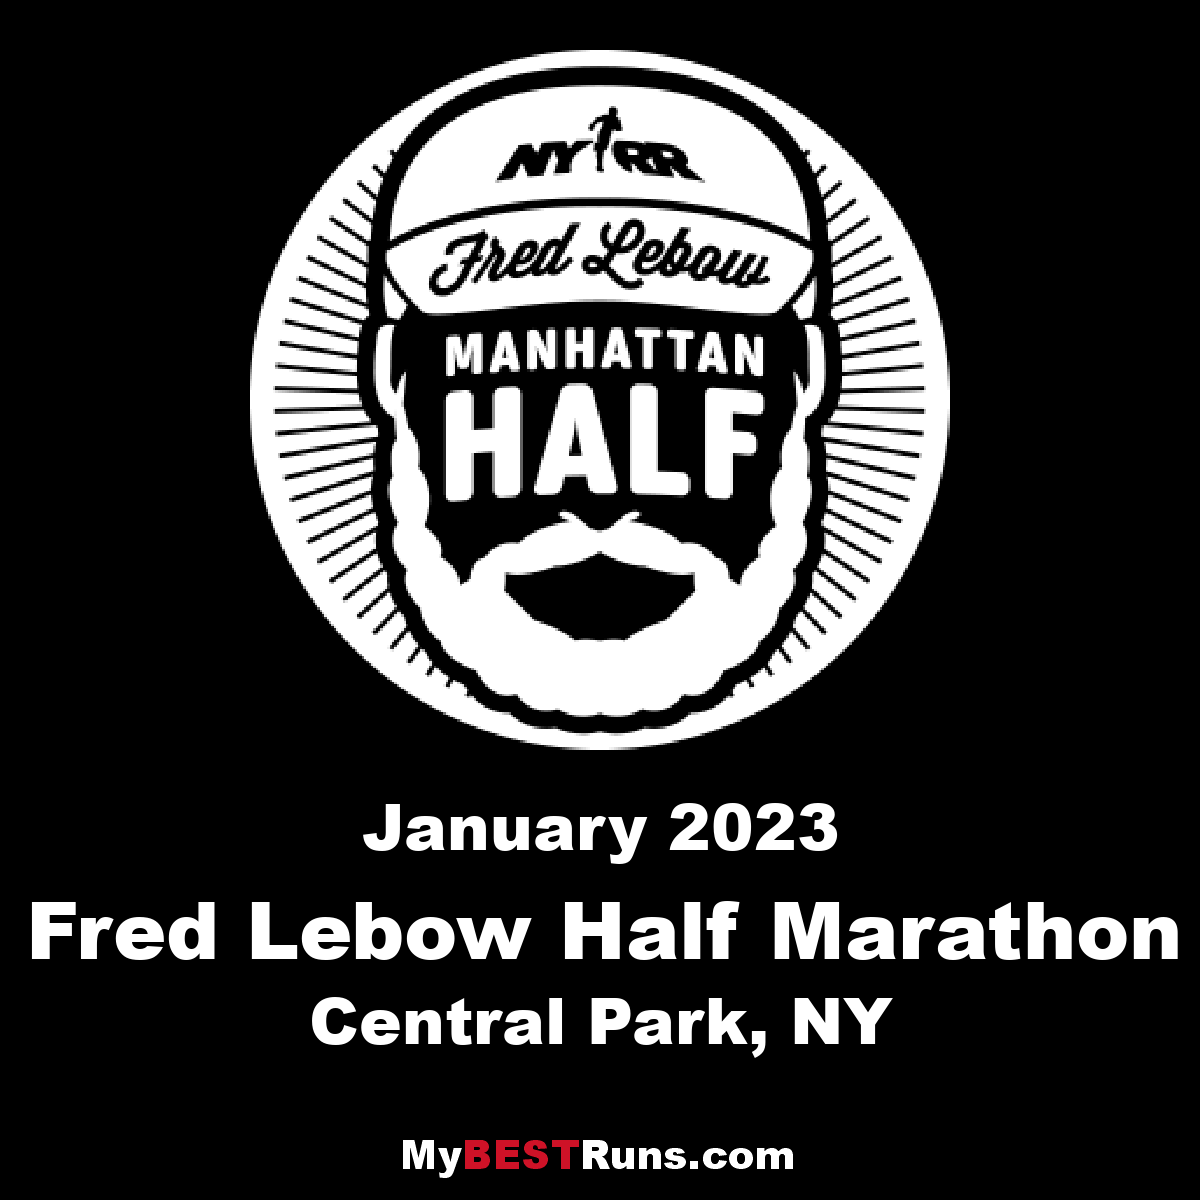 Fred Lebow Marathon and Half